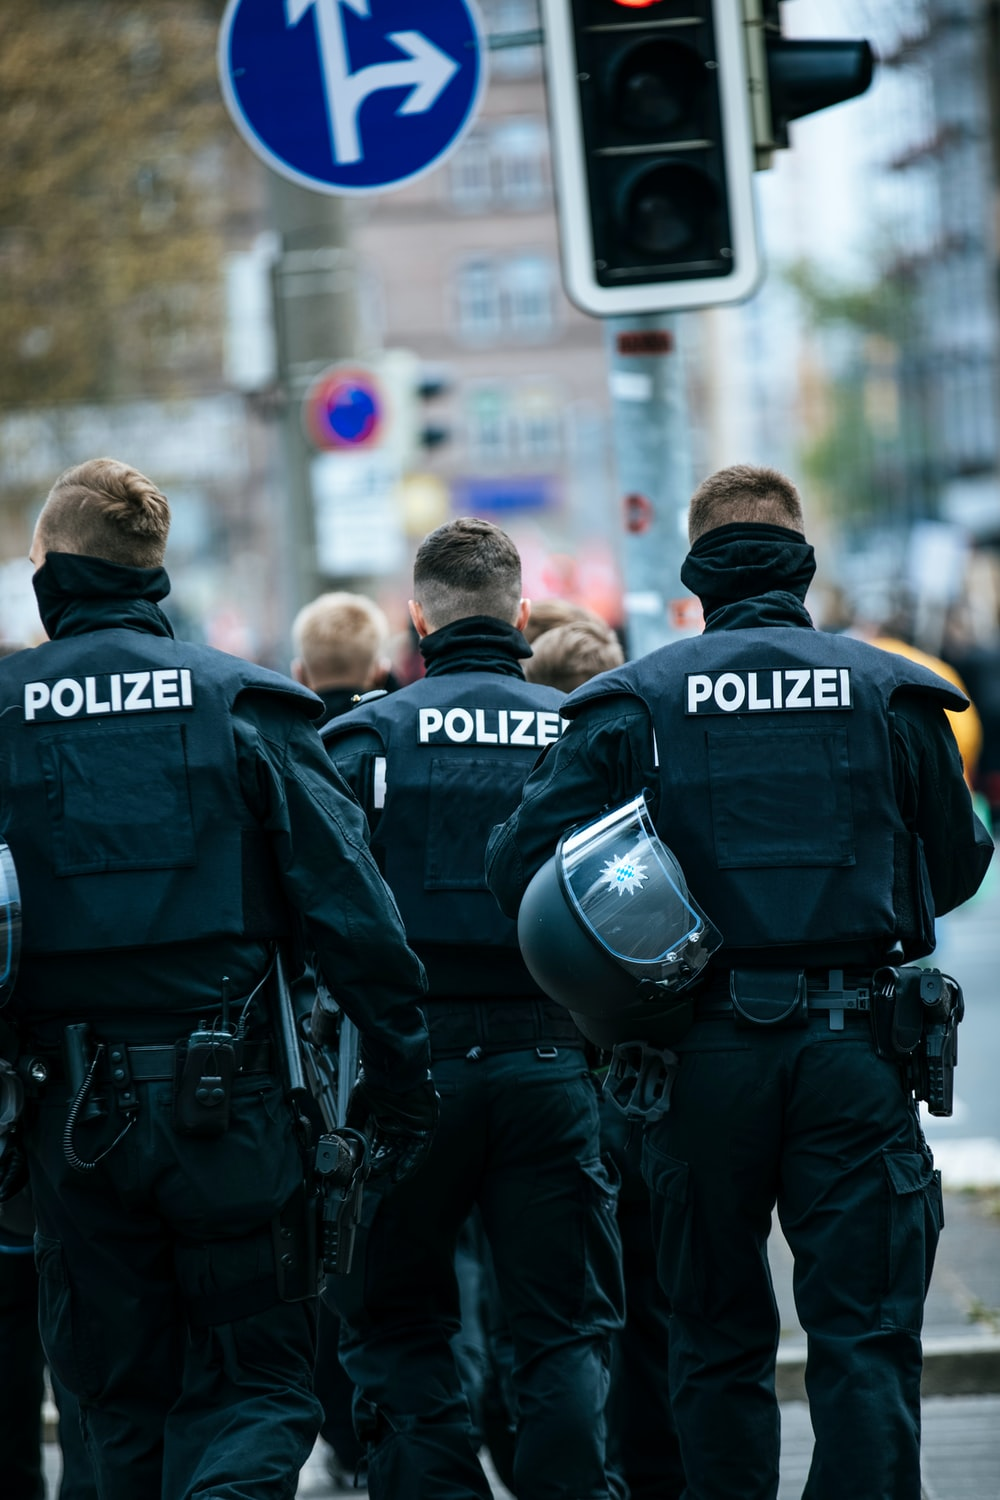 police men in black and blue police uniform standing on street during daytime